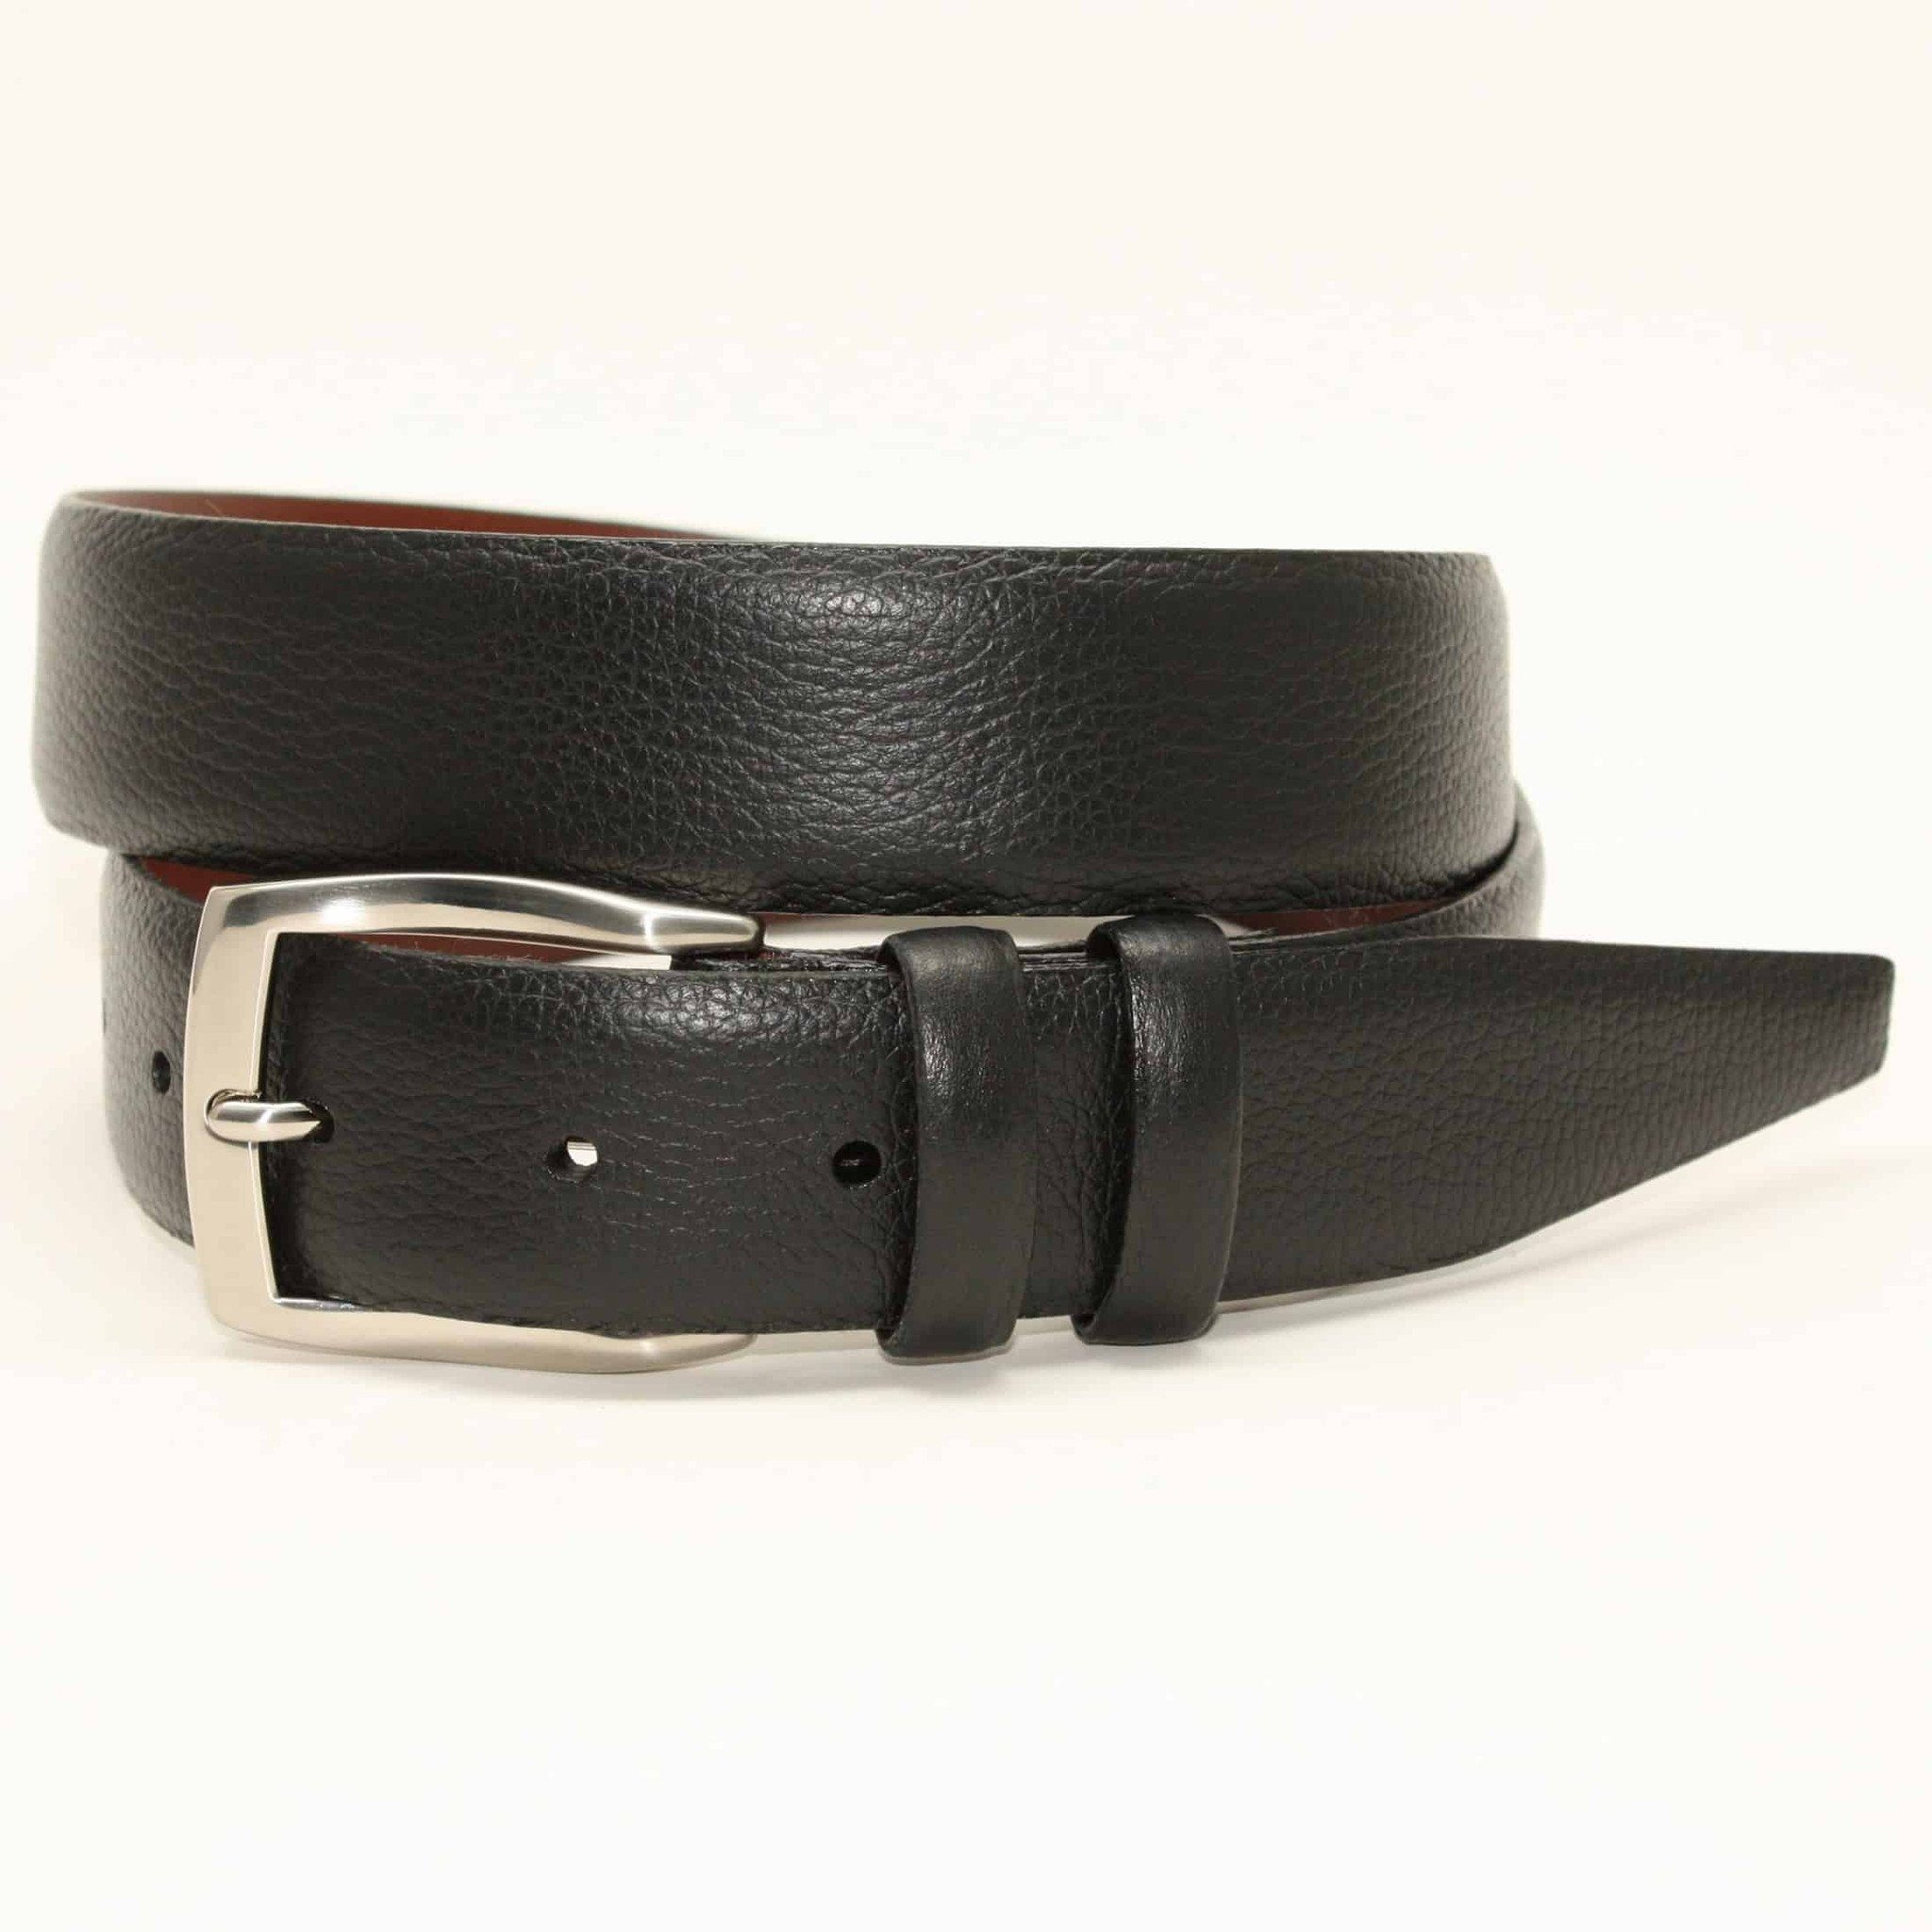 X-LONG Pebble Grained Calfskin Belt - Black,BELT,GentRow.com, | GentRow.com